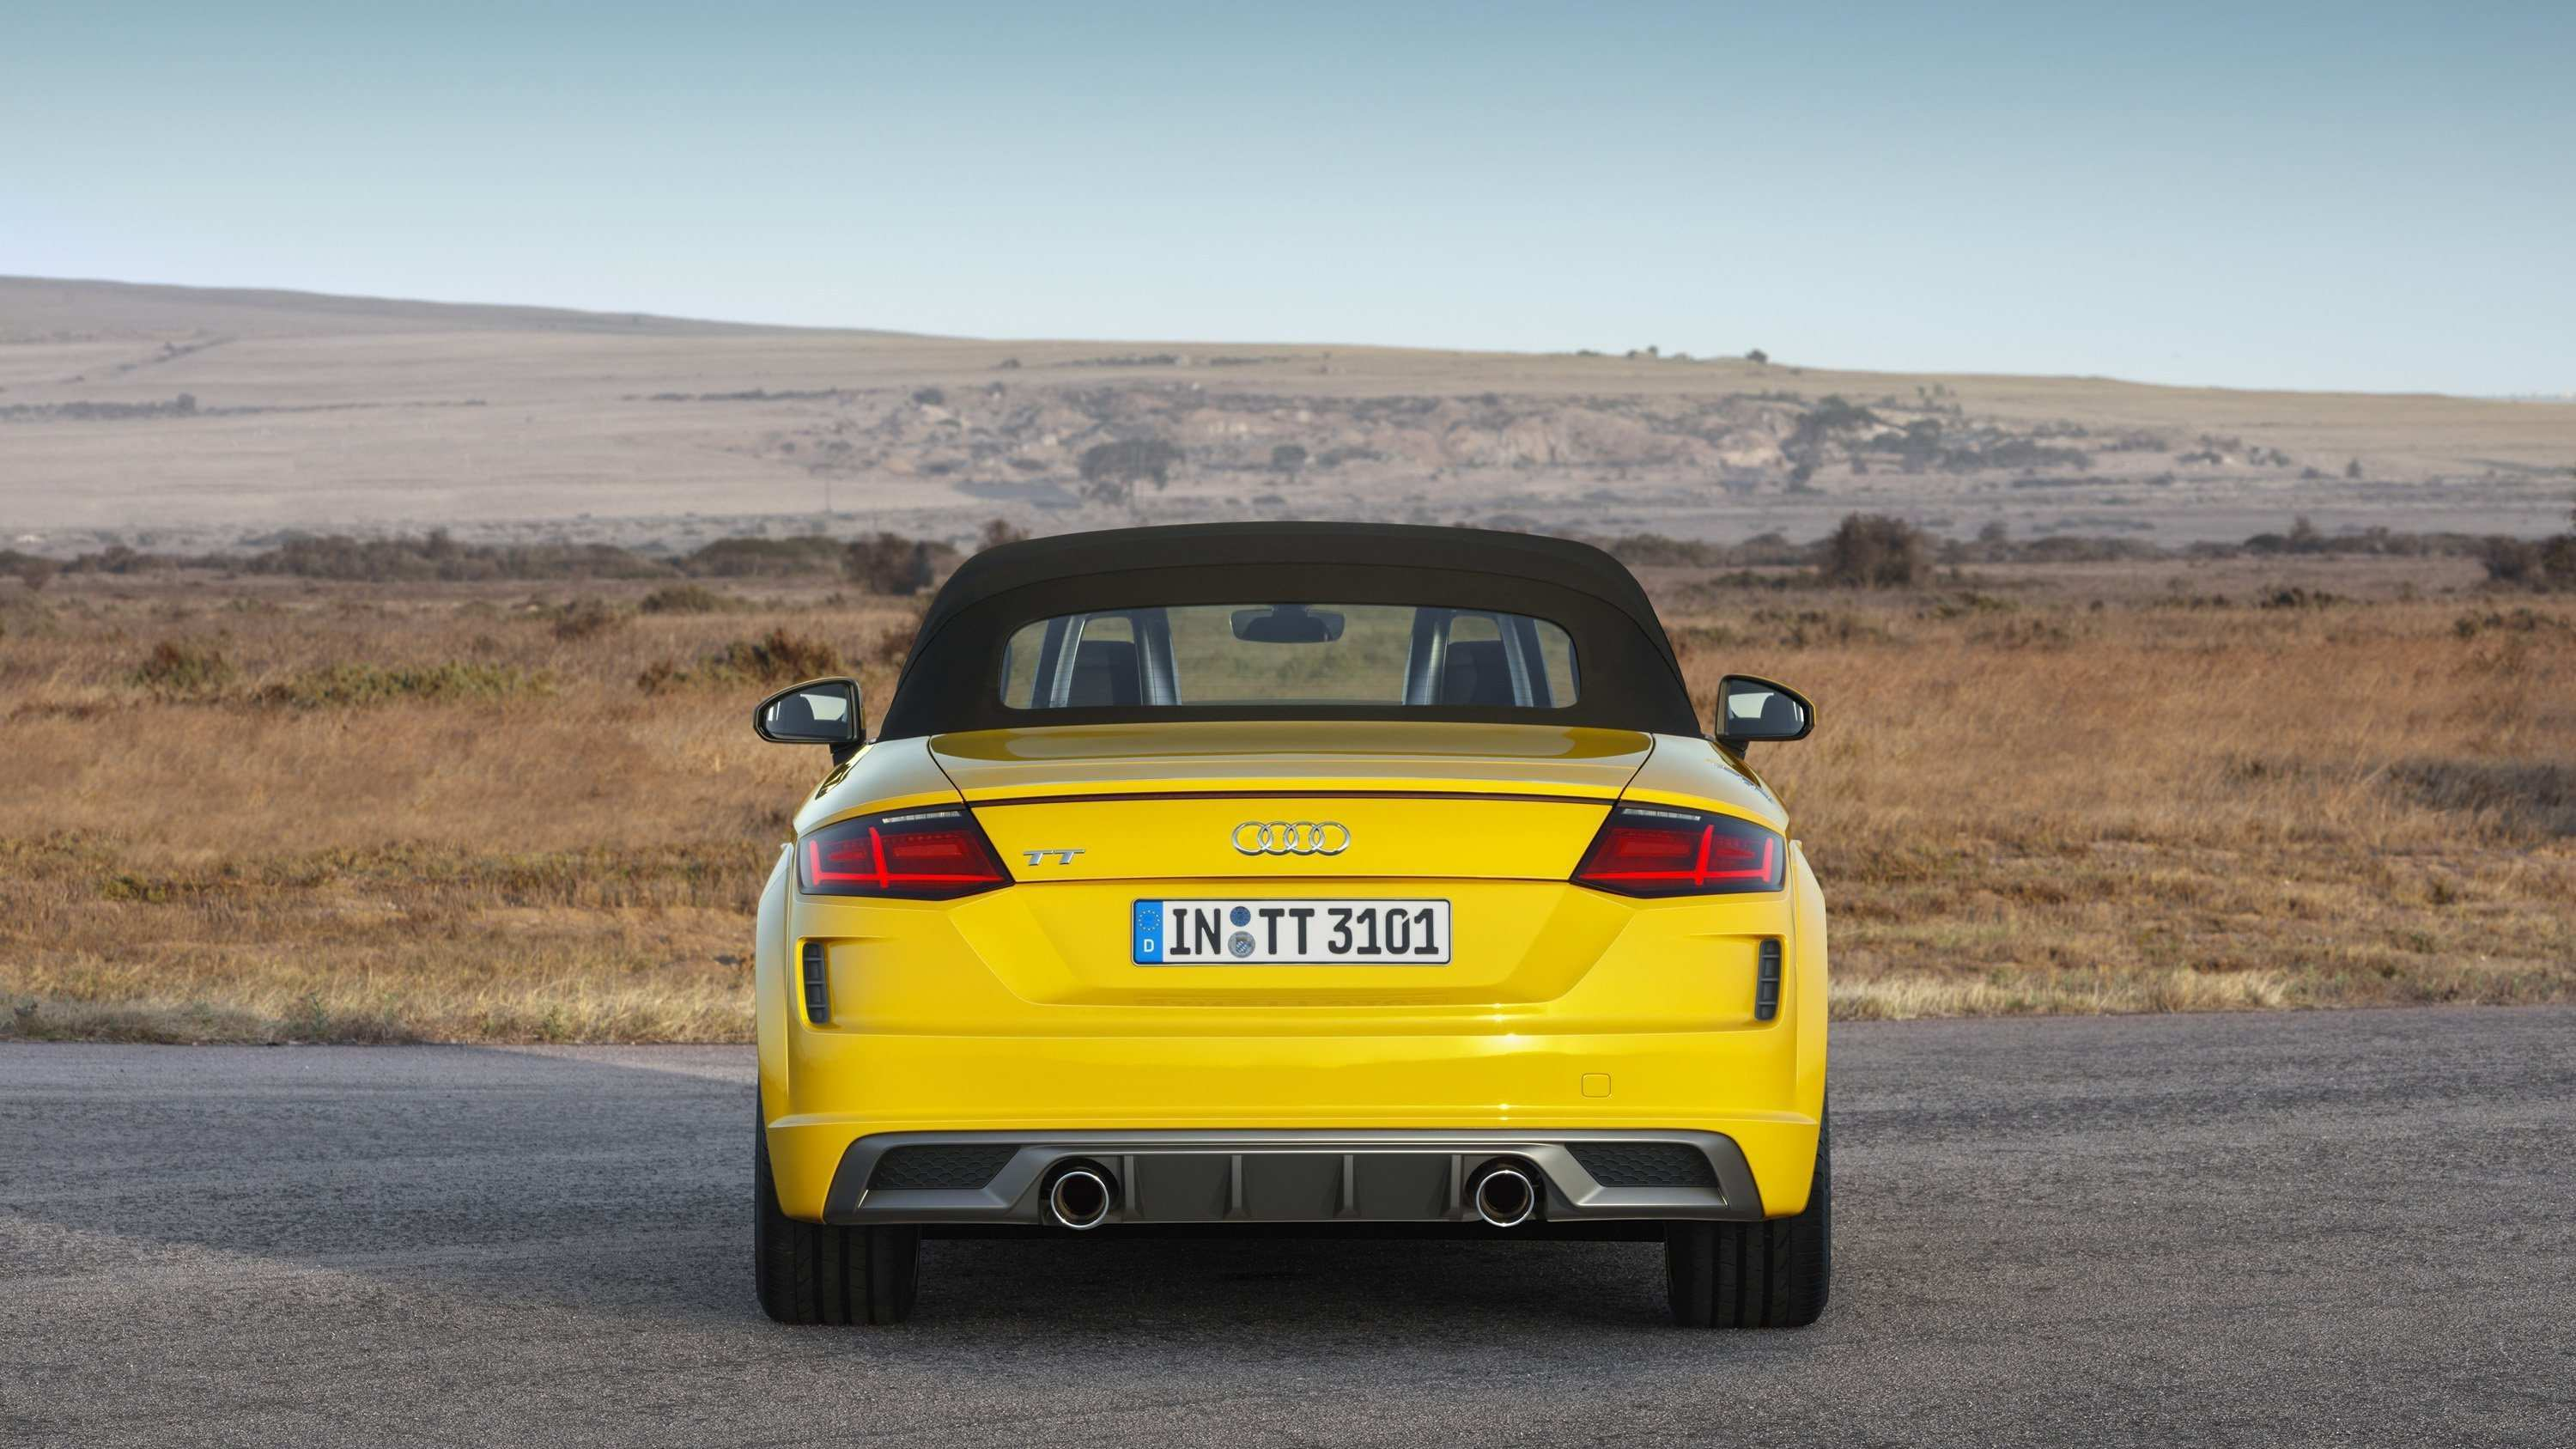 82 Gallery of The Audi Tt Convertible 2019 Concept Ratings for The Audi Tt Convertible 2019 Concept